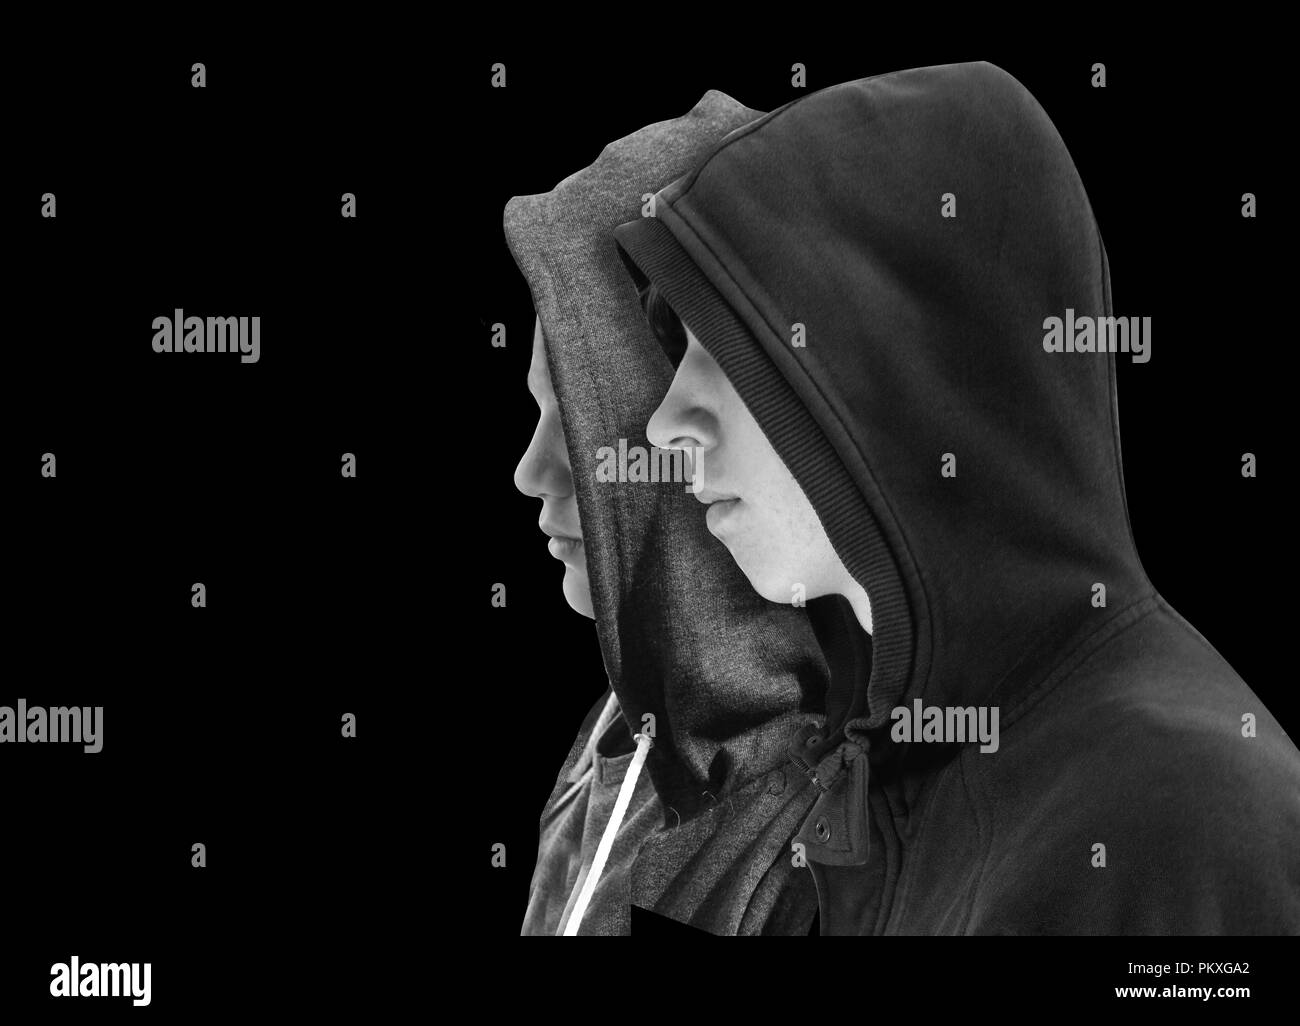 Two troubled teenage boys with black hoodie standing next to each other in profile isolated on black background. Black and white image. - Stock Image